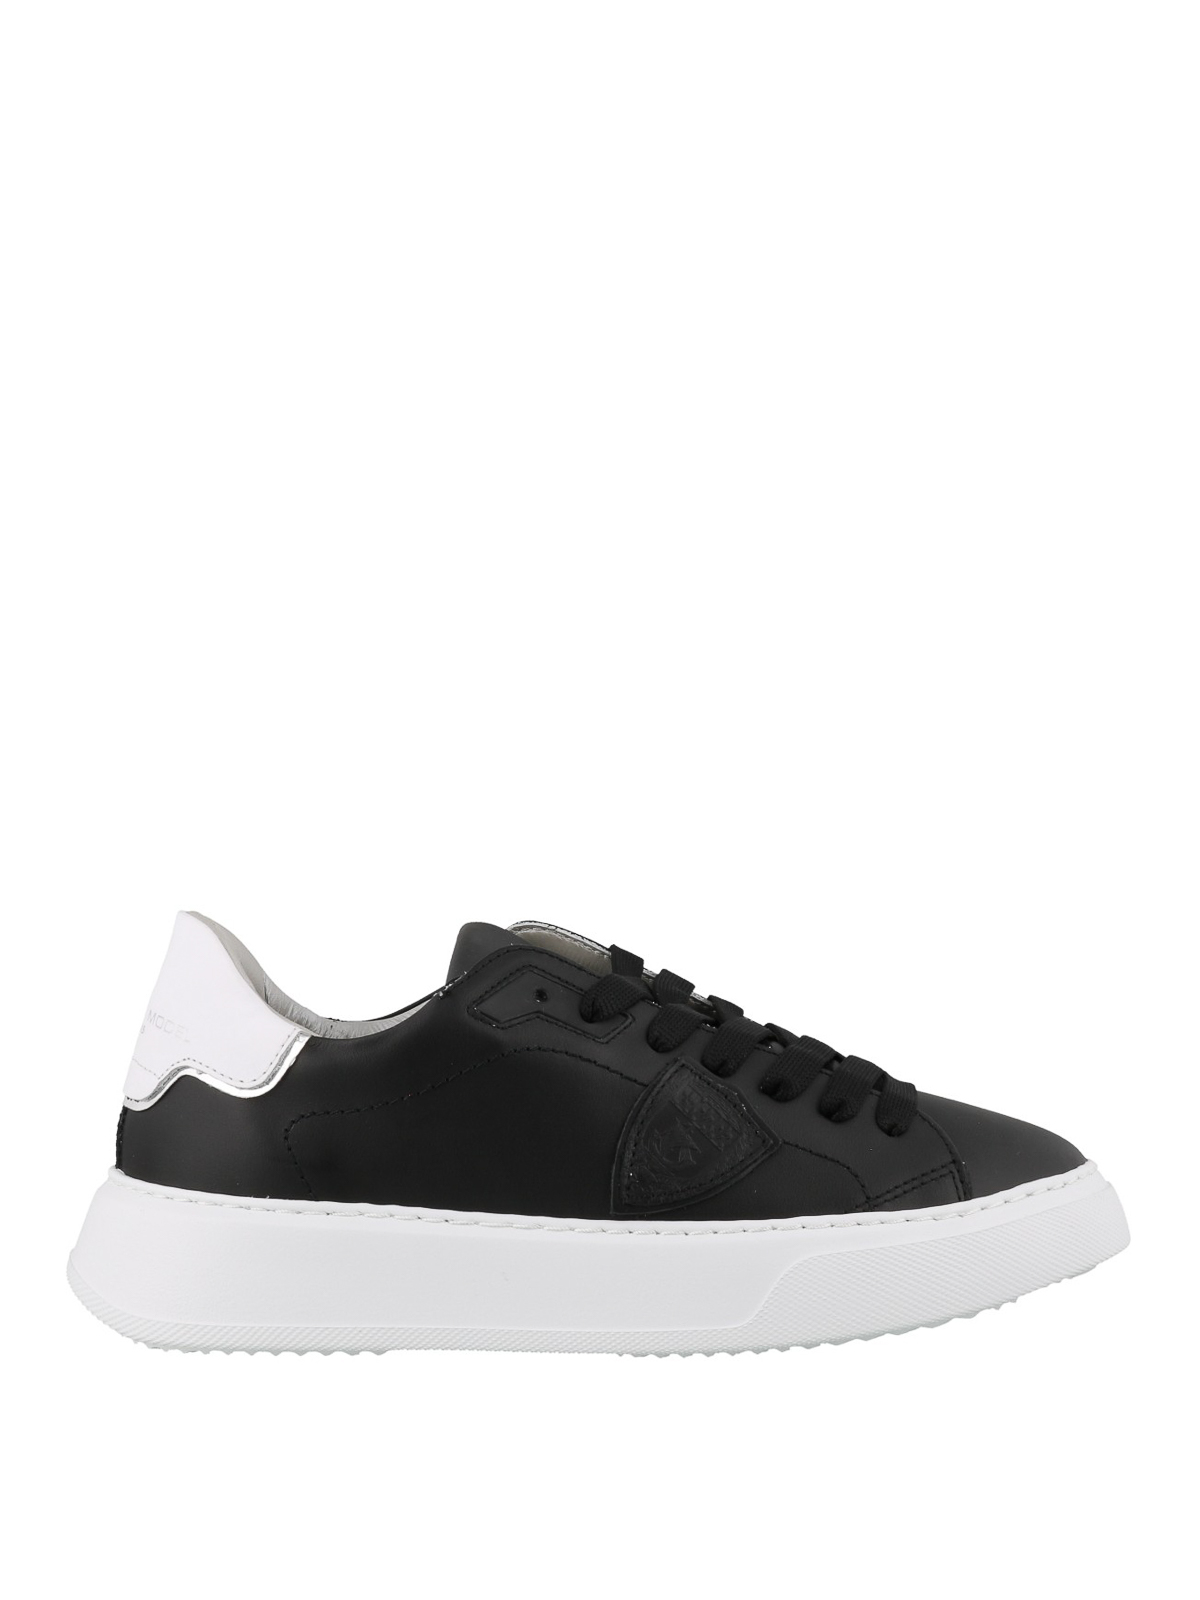 Philippe Model Leathers TEMPLE SNEAKERS